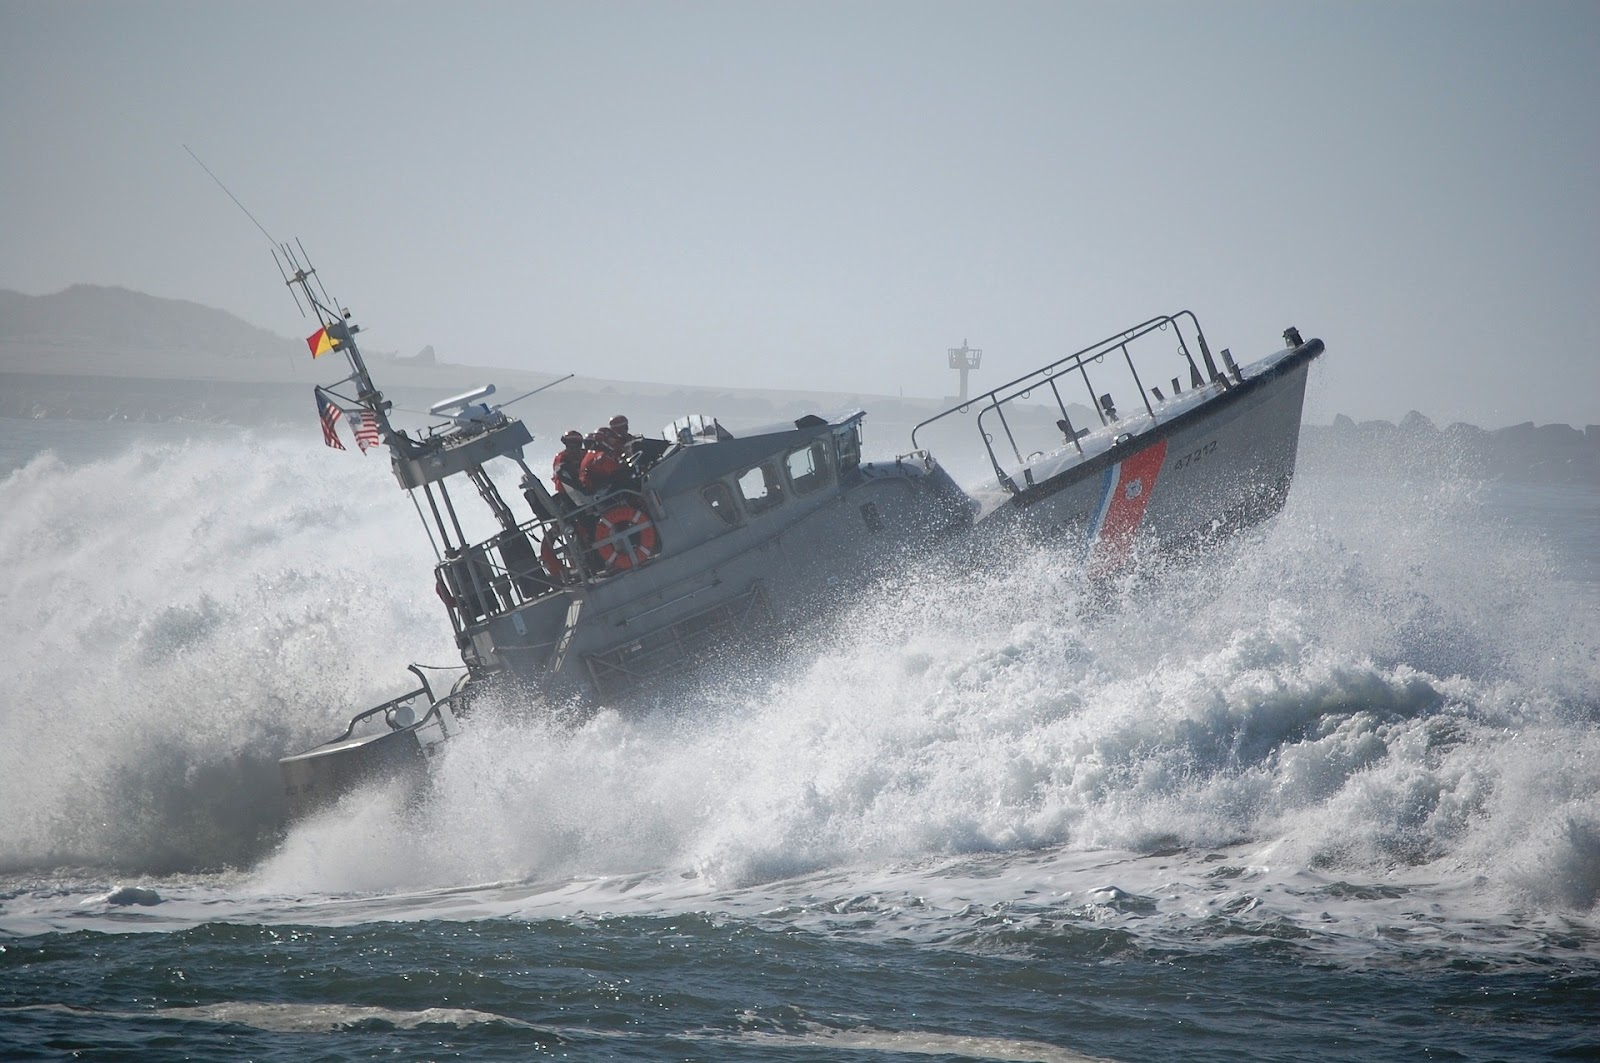 lifeboat on big waves